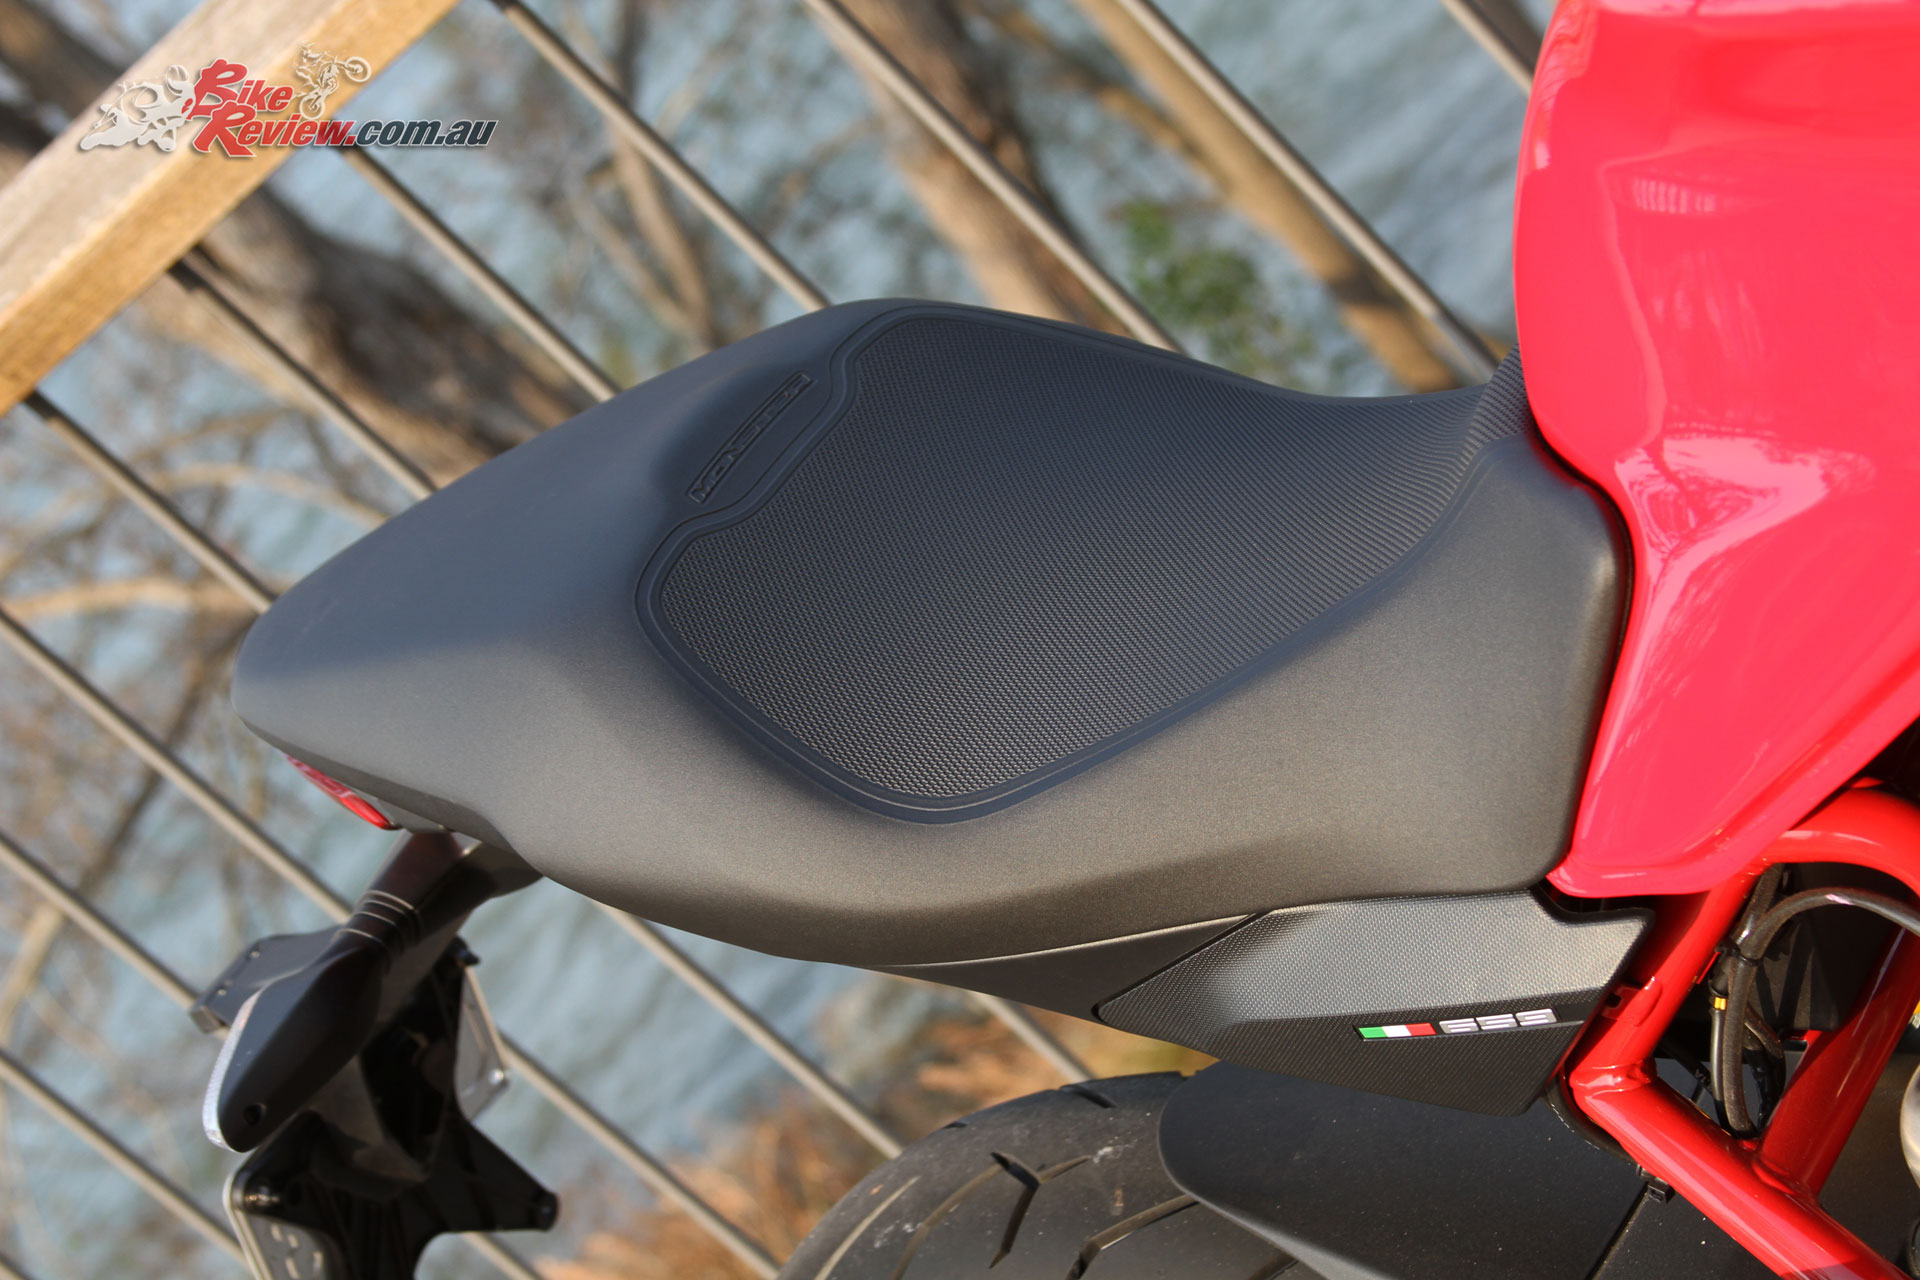 A low seat height is aimed directly at easy reach to the ground for new riders